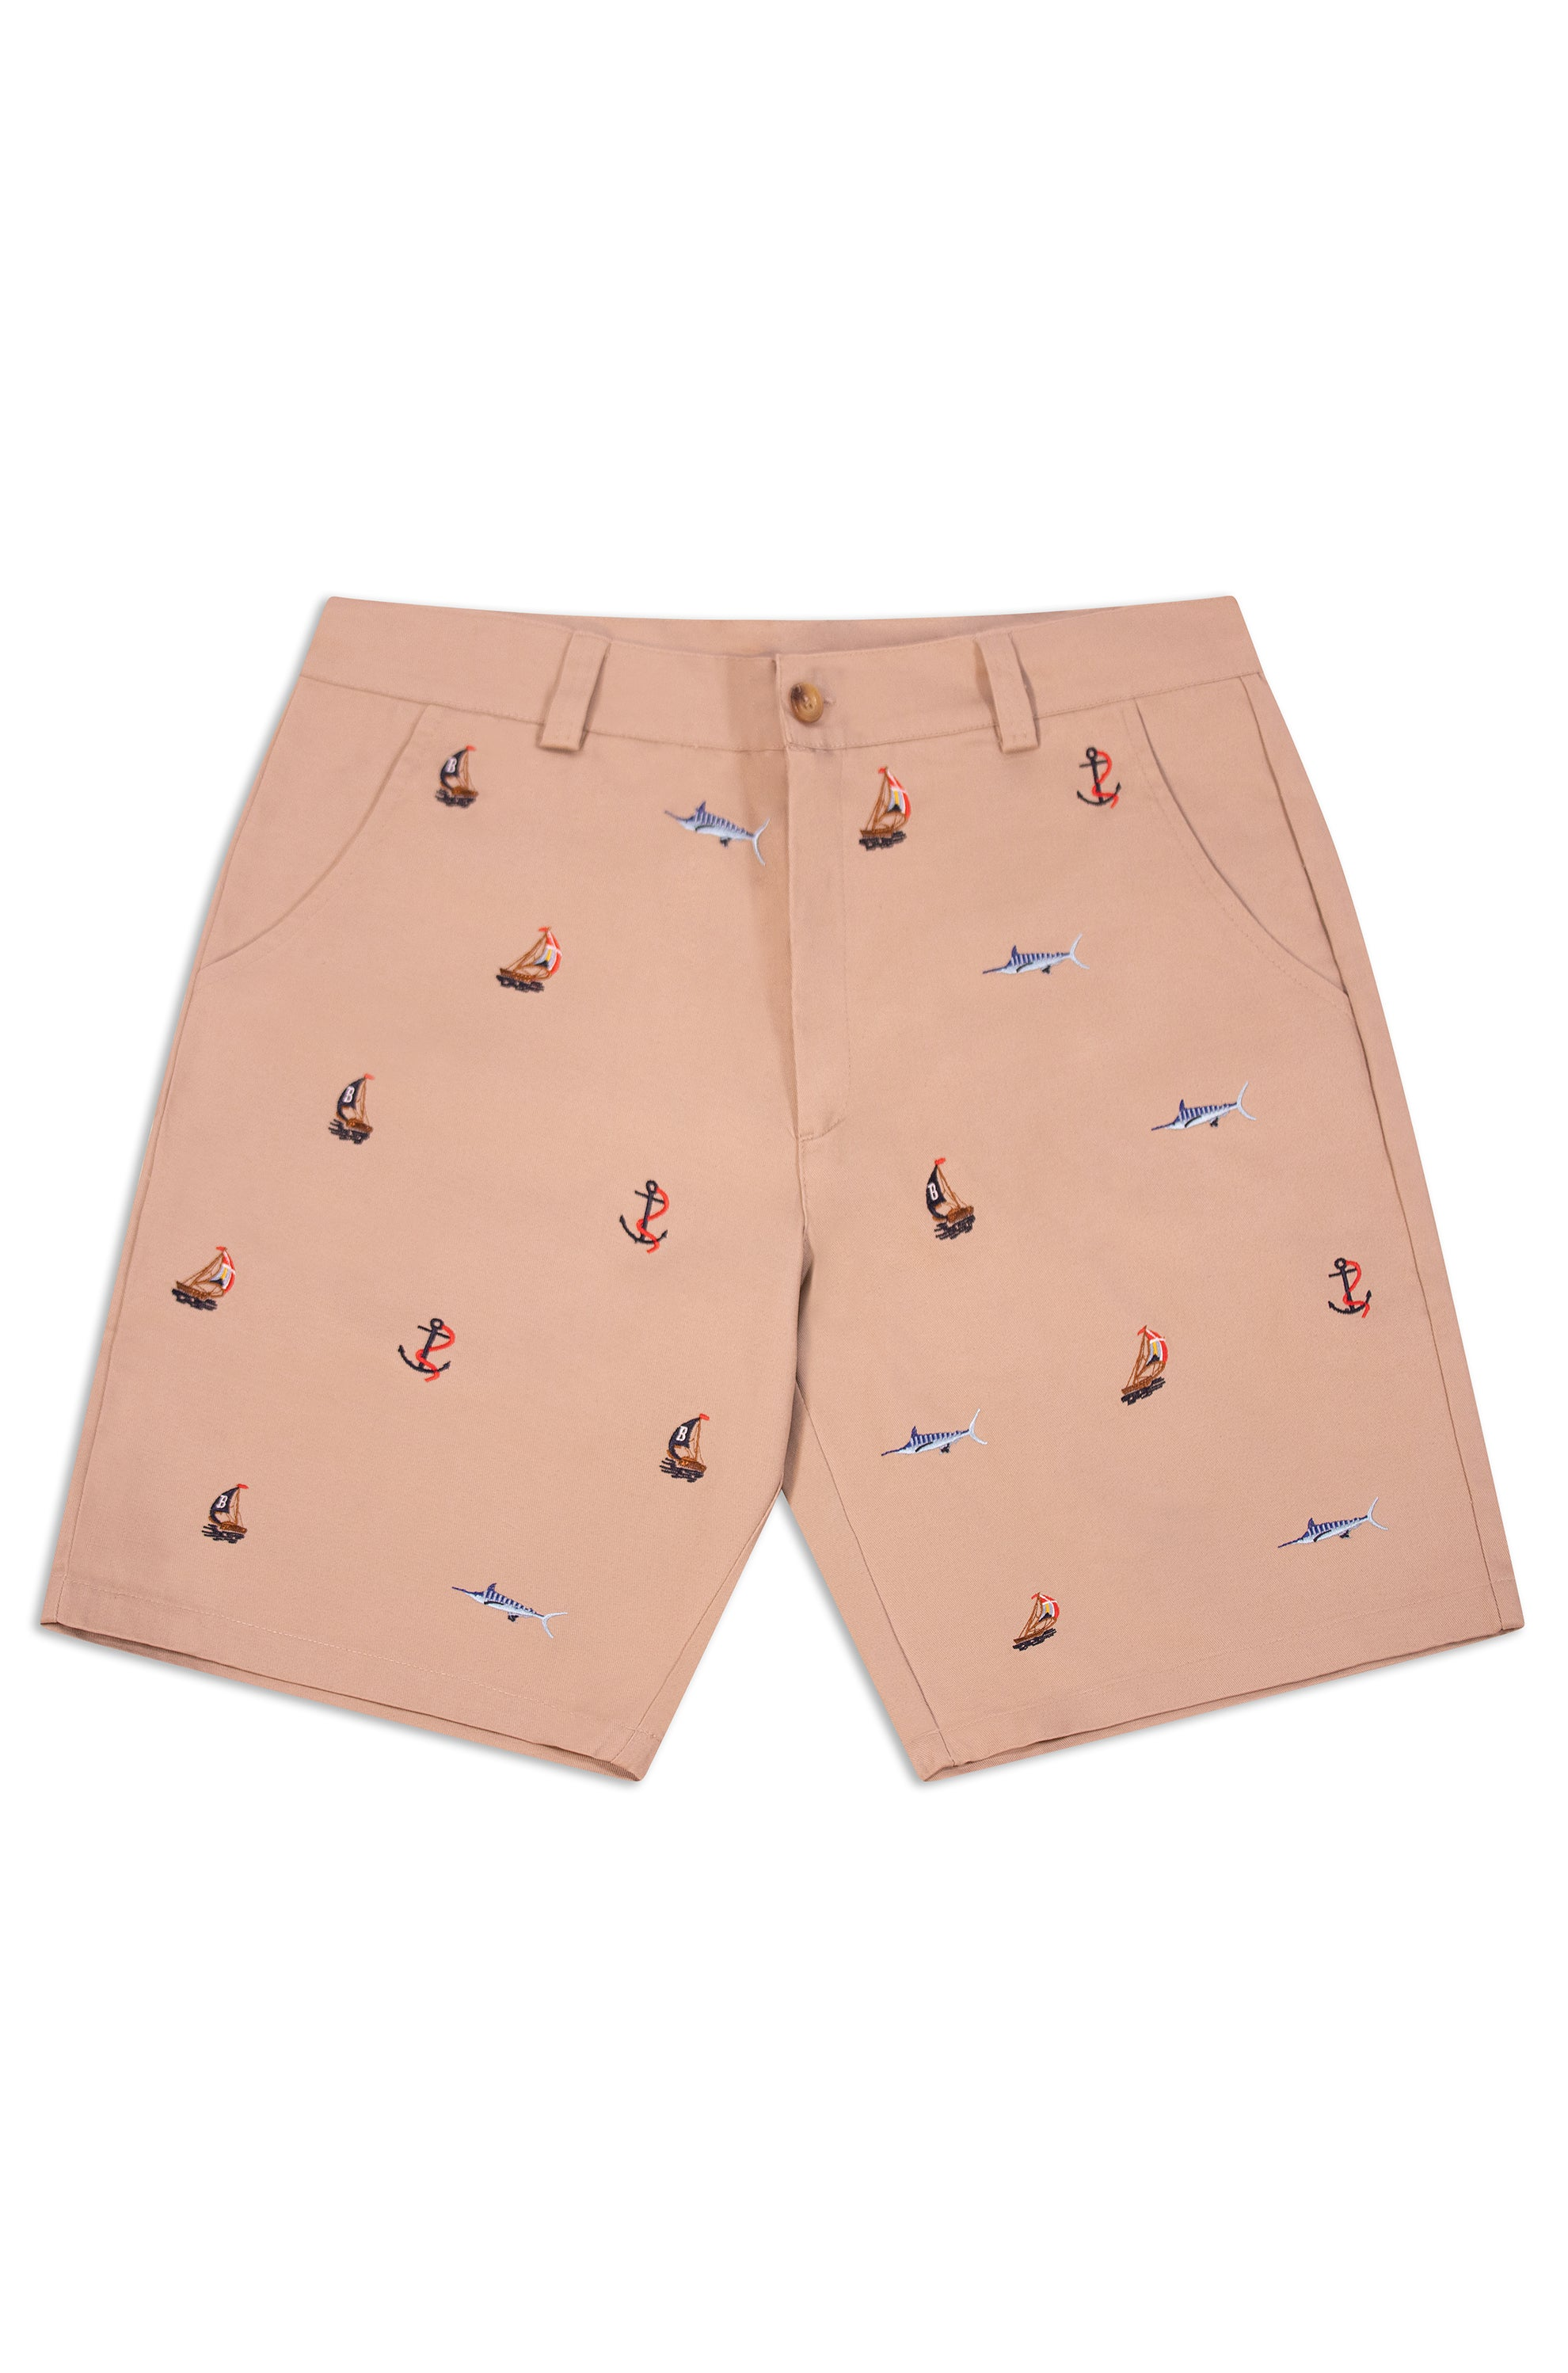 THE REGATTA EMBROIDERED SHORTS- KHAKI